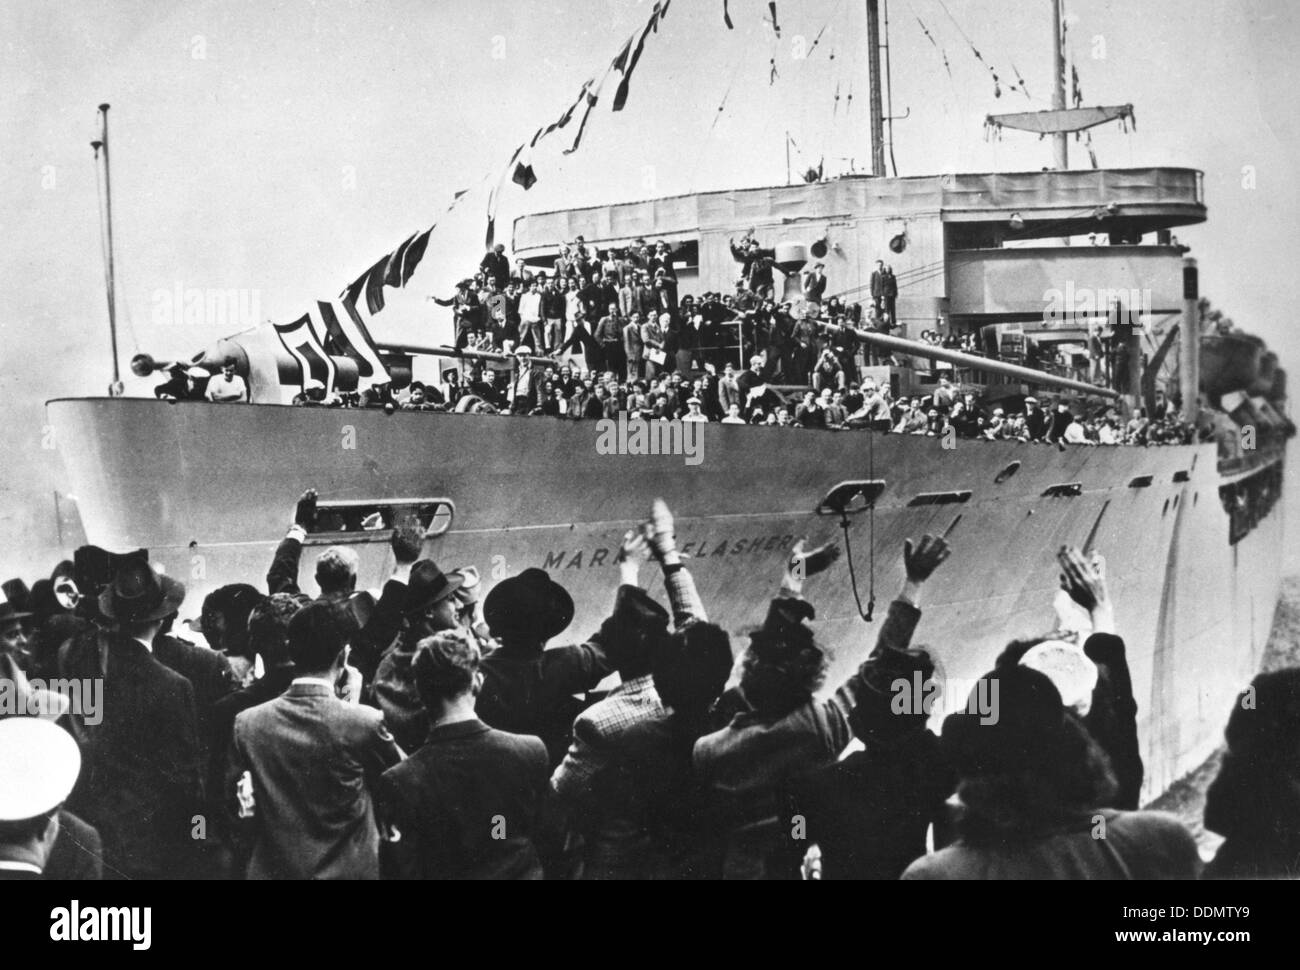 Arrival of SS Marine Flasher, New York, USA, 20  May 1946. - Stock Image